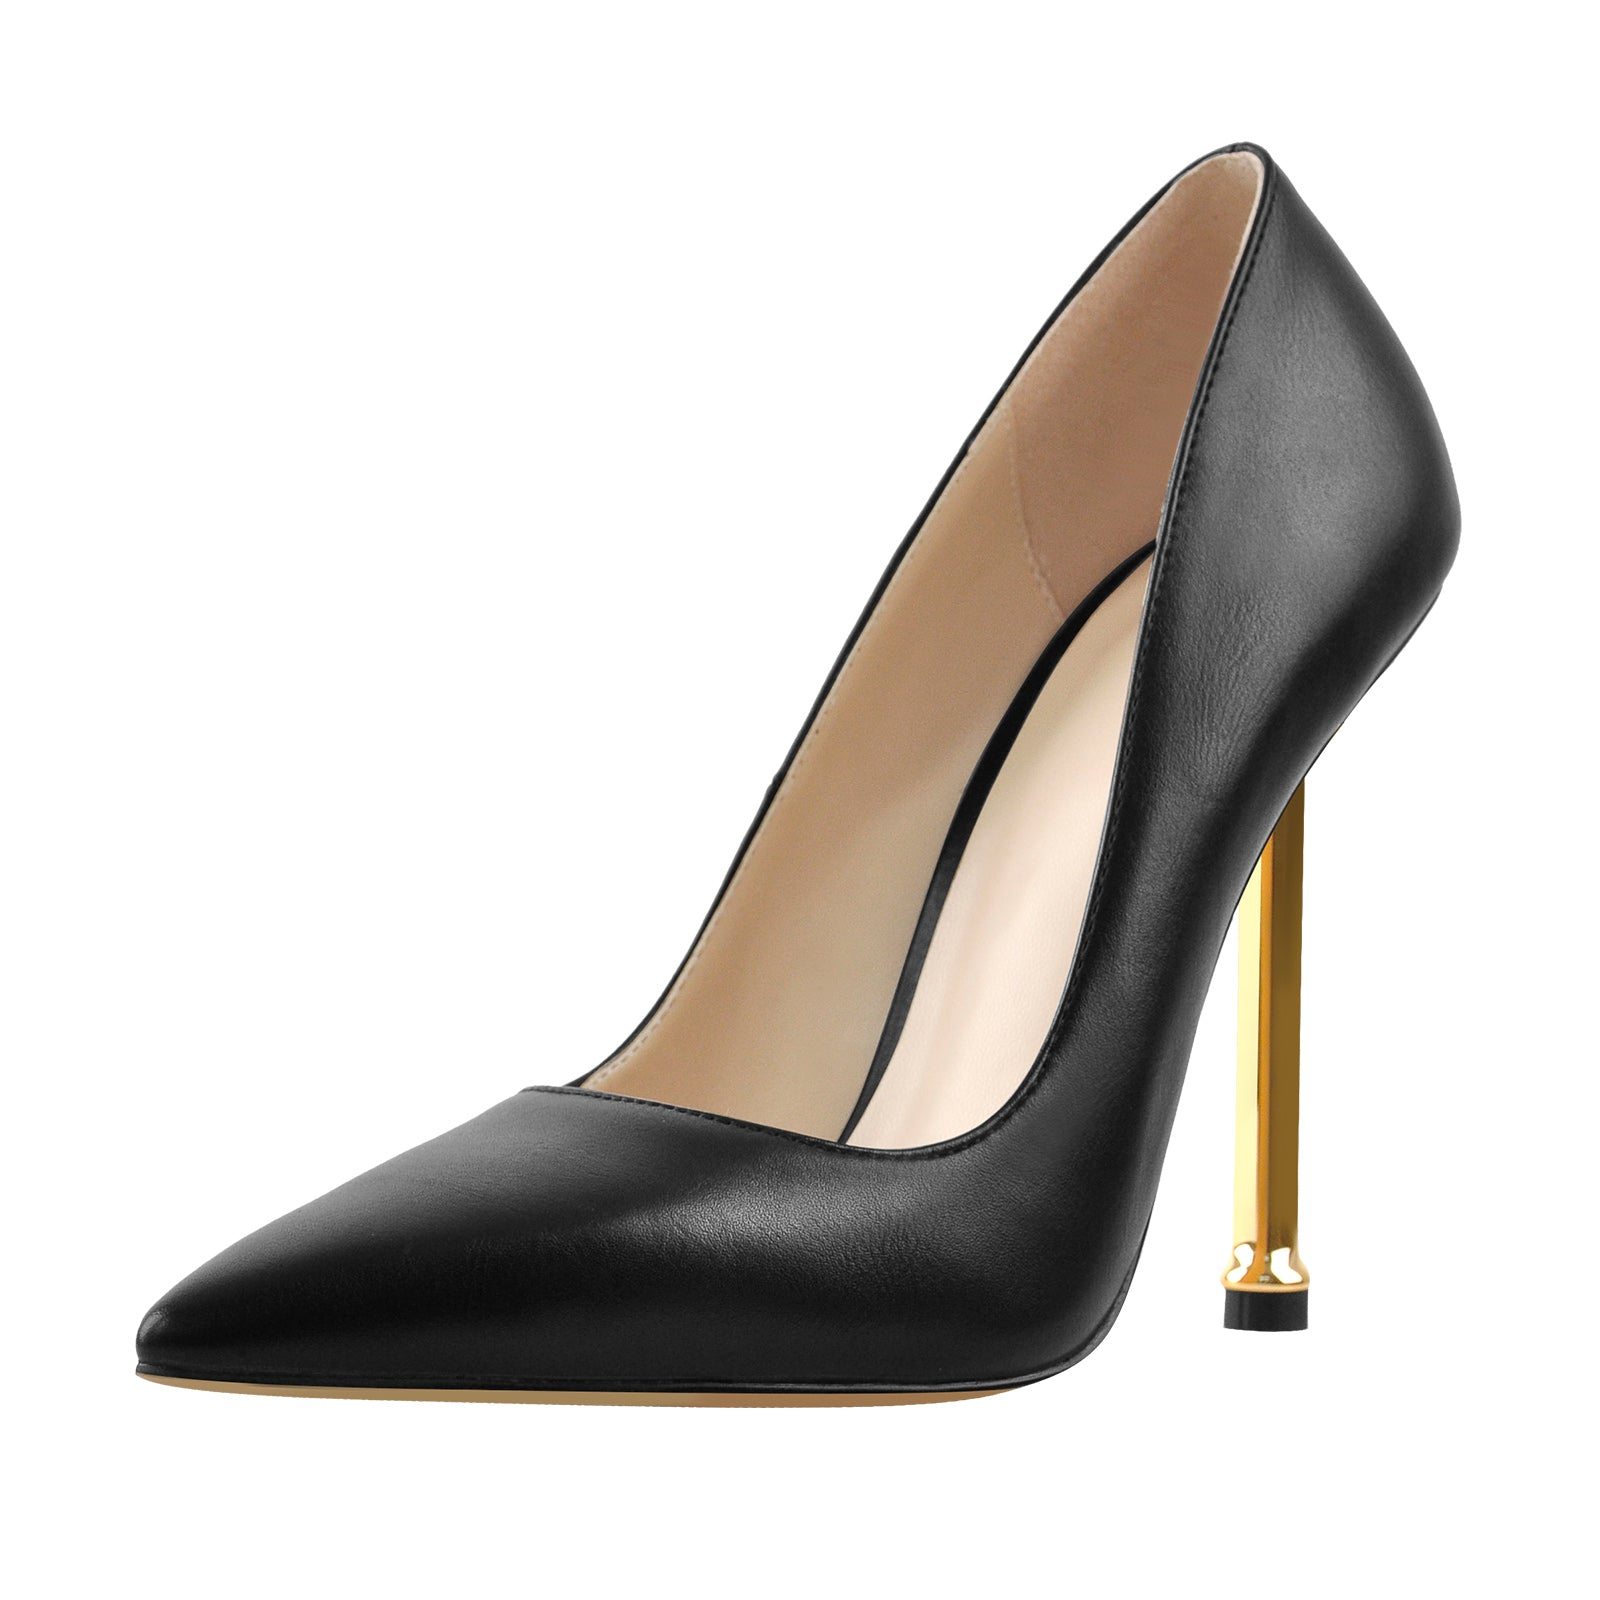 12cm Pointed Toe Matte Black High Metal Heels Stiletto Pumps